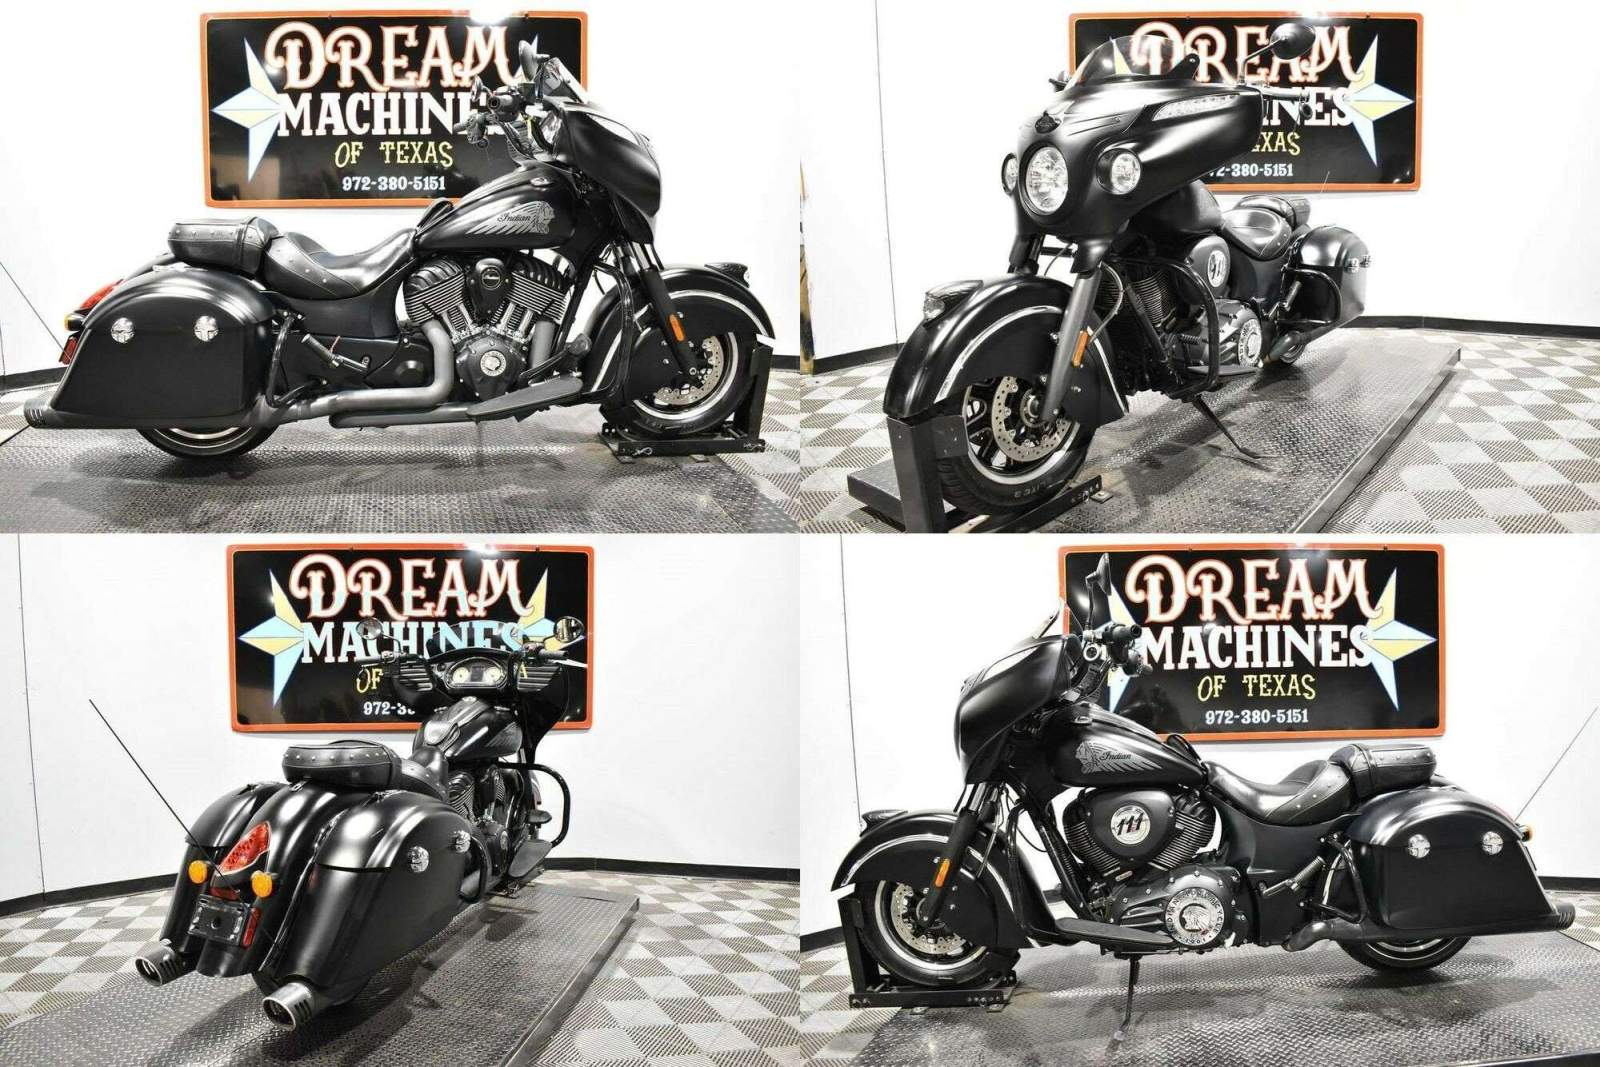 2016 Indian Chieftain Dark Horse Black used for sale near me